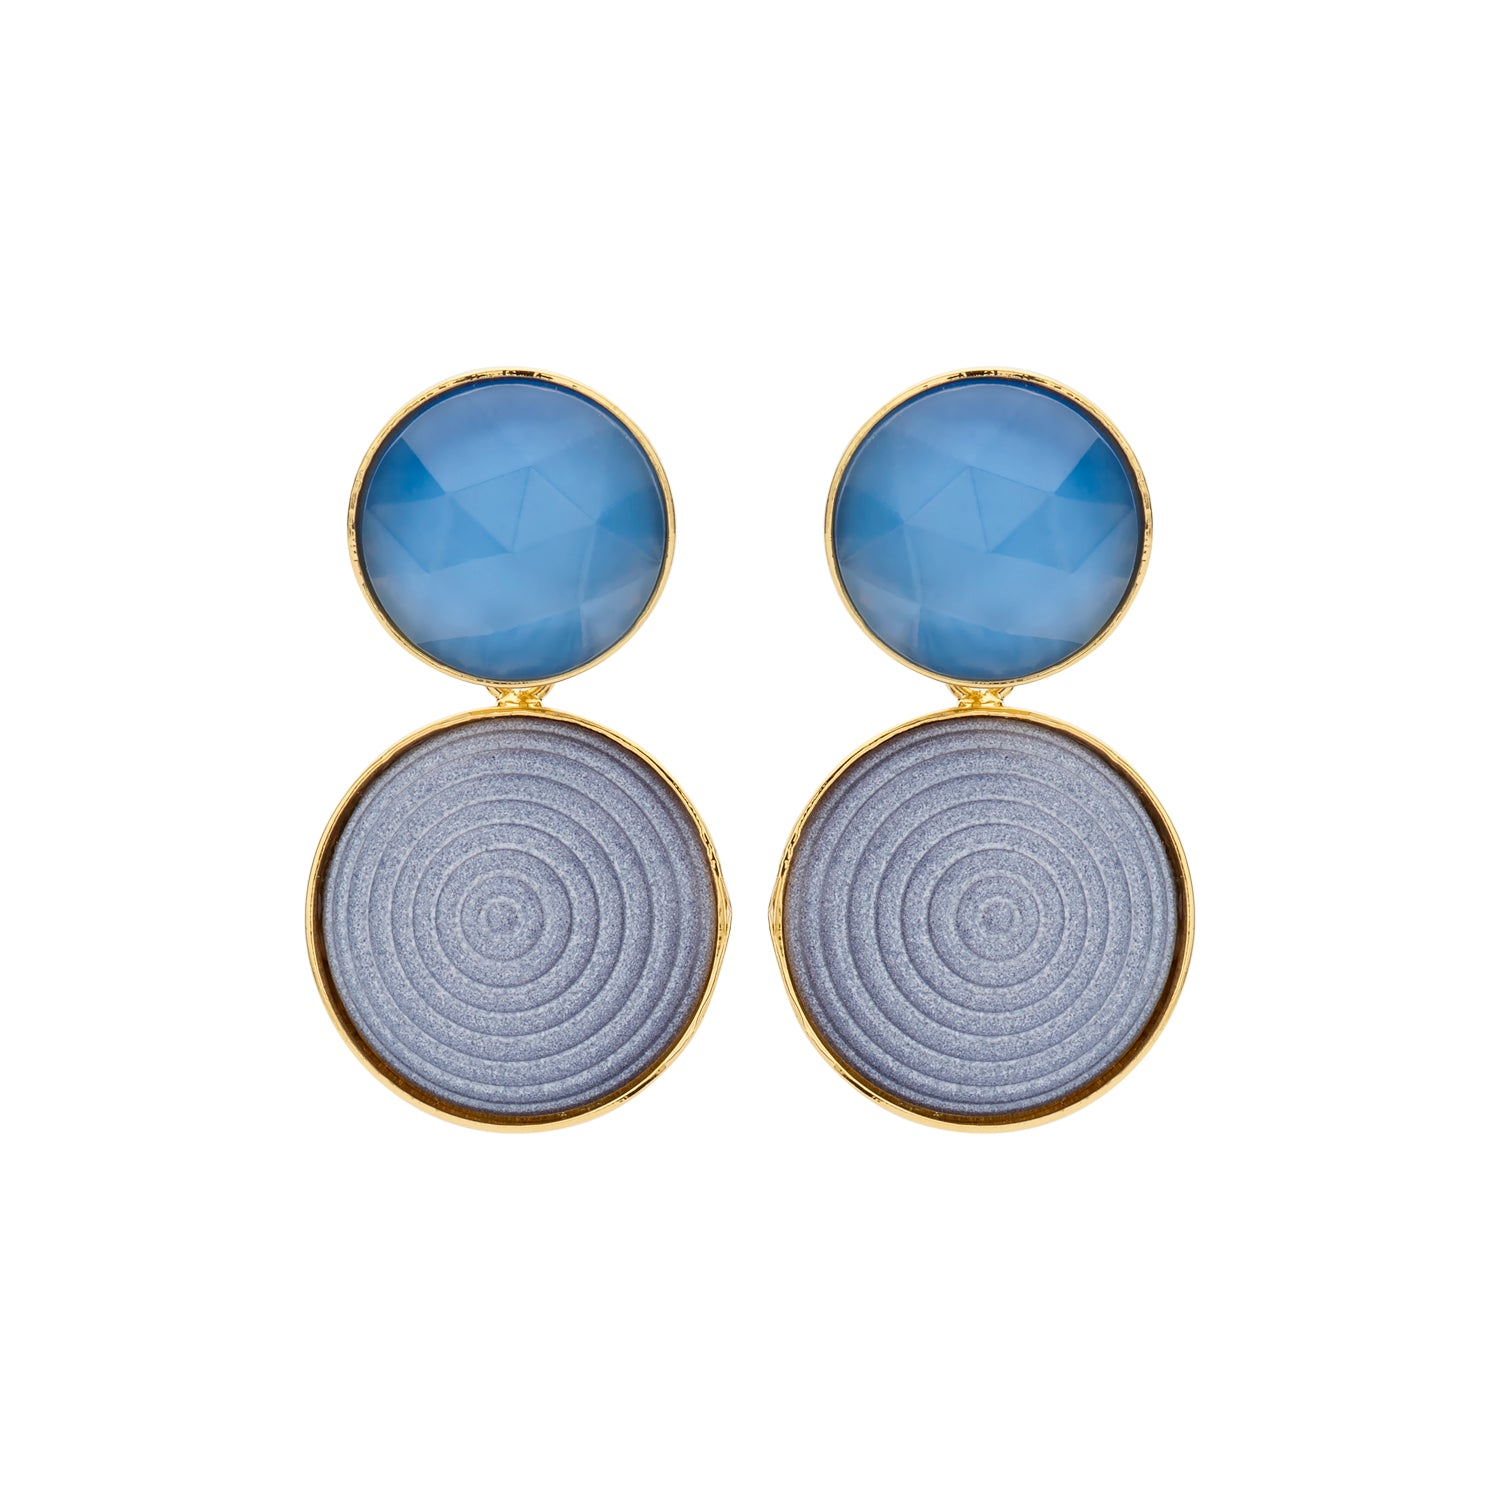 Lines Caro jeans earrings - Souvenirs de Pomme